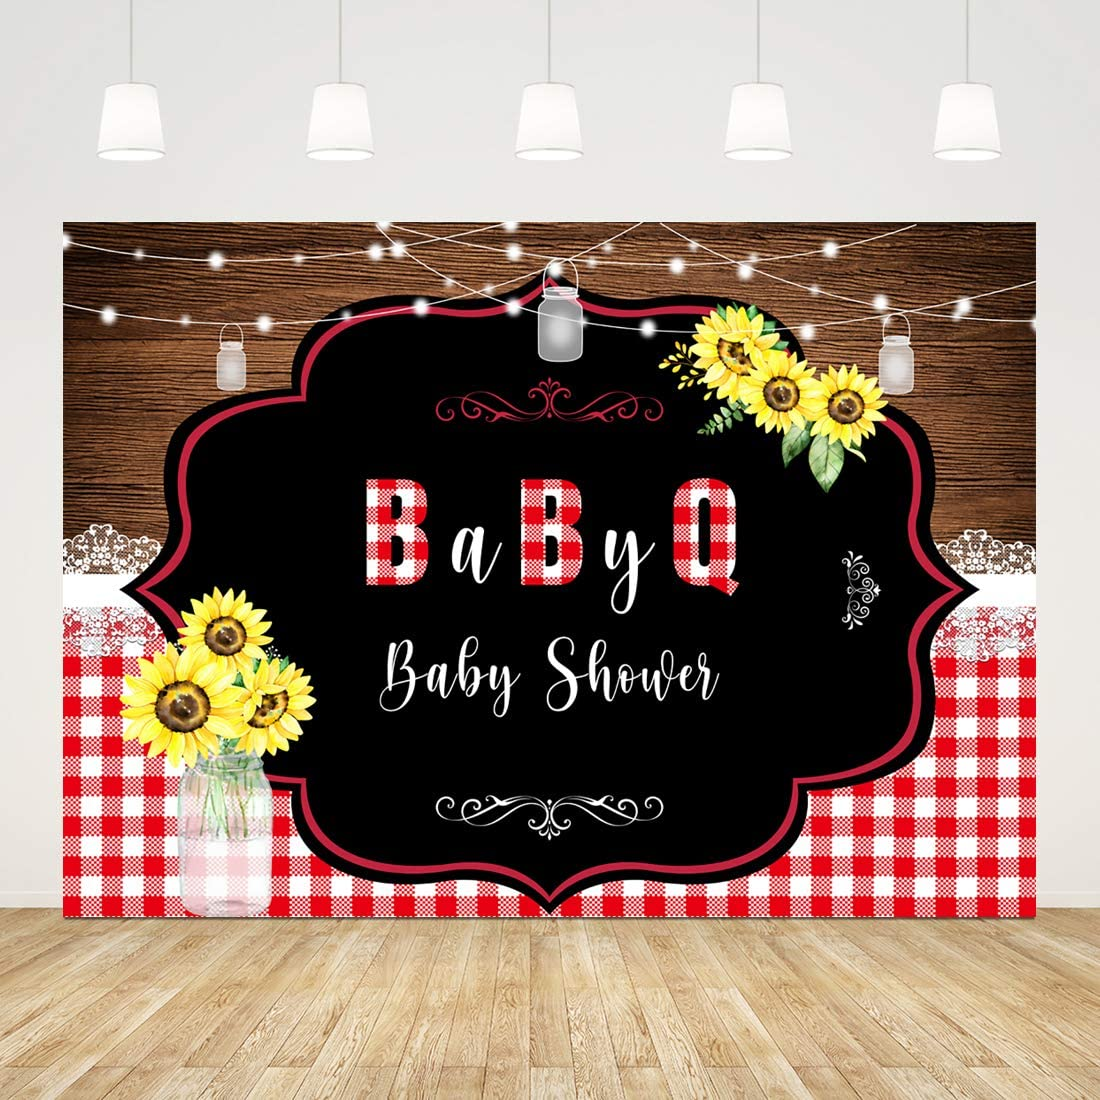 Baby-Q Baby Shower Photography Backdrops Rustic Wood Lace Sunflower Baby Shower Background Shiny Lights Mason Jar Newborn Baby Party Decorations Banner Photo Studio Props